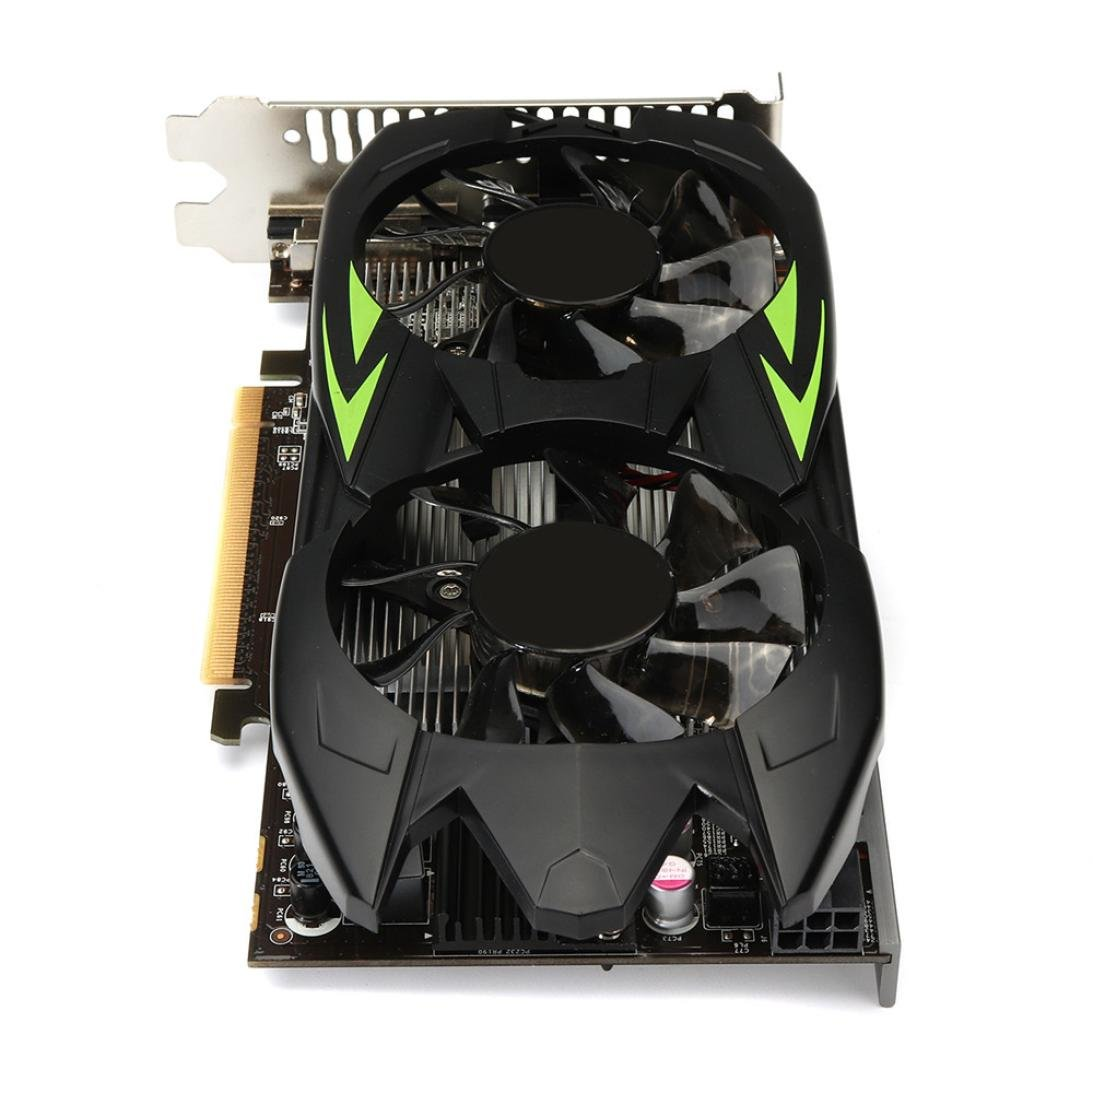 Clearence!! Gaming Graphic Card 3GB GTX660TI 3GB GDDR5 192bit VGA DVI HDMI Graphics Card with Fan (Black) by Saingace (Image #3)